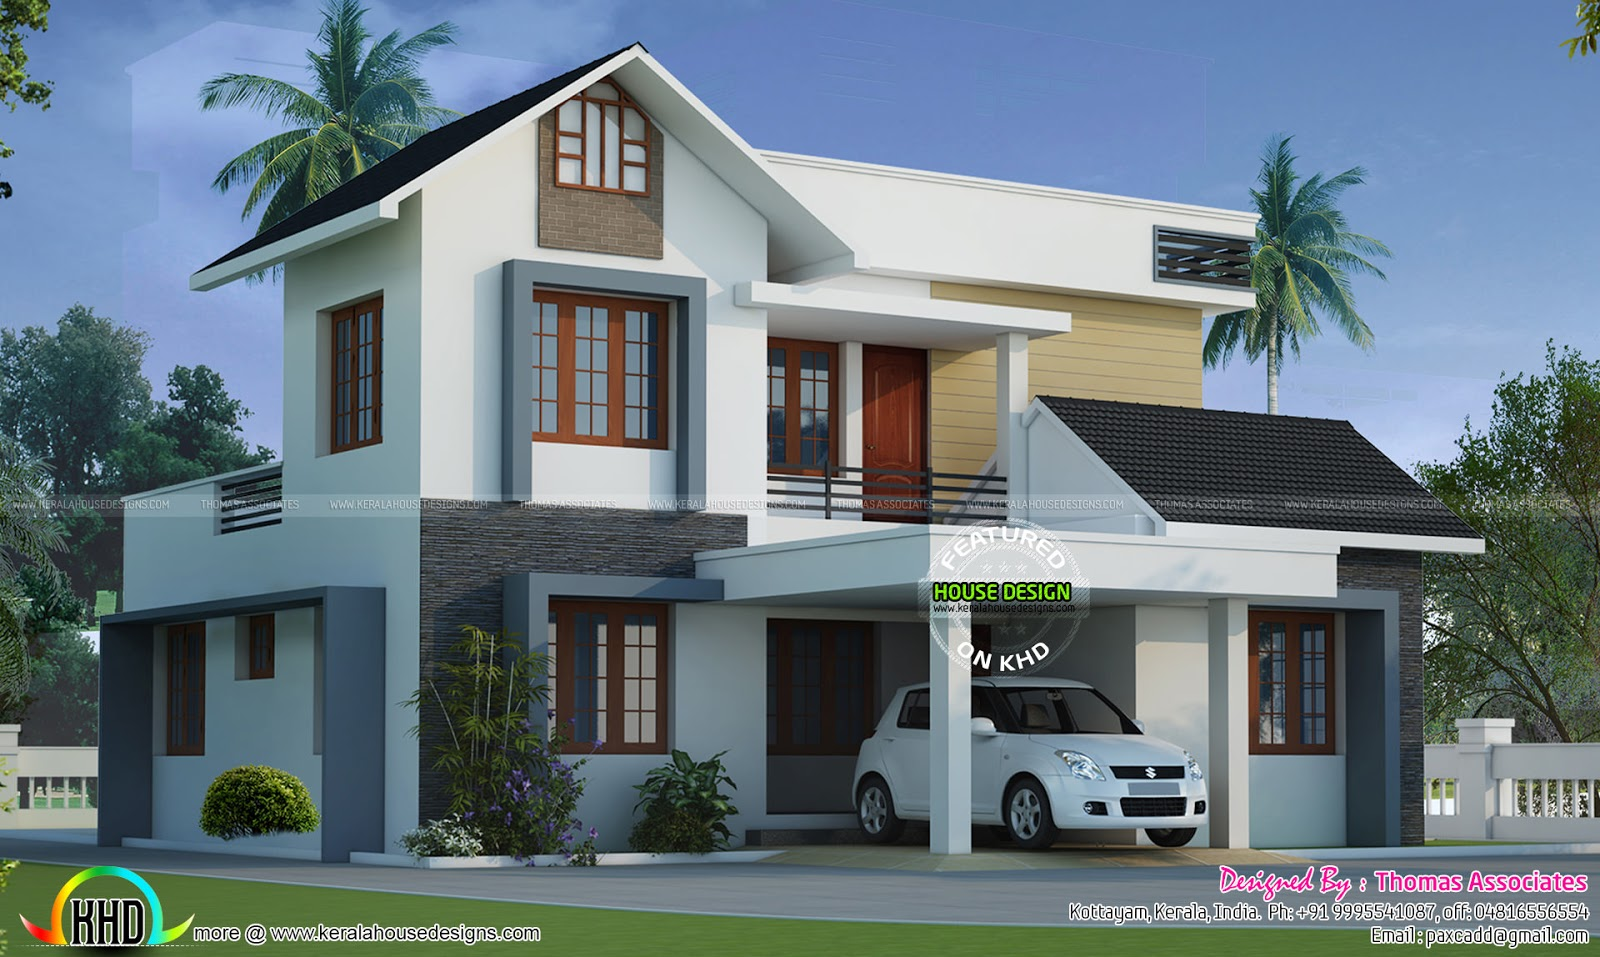 4 Bedroom Curved Roof Mix Contemporary Home Part - 25: Modern Style Mix Roof Home In 1650 Sq-ft